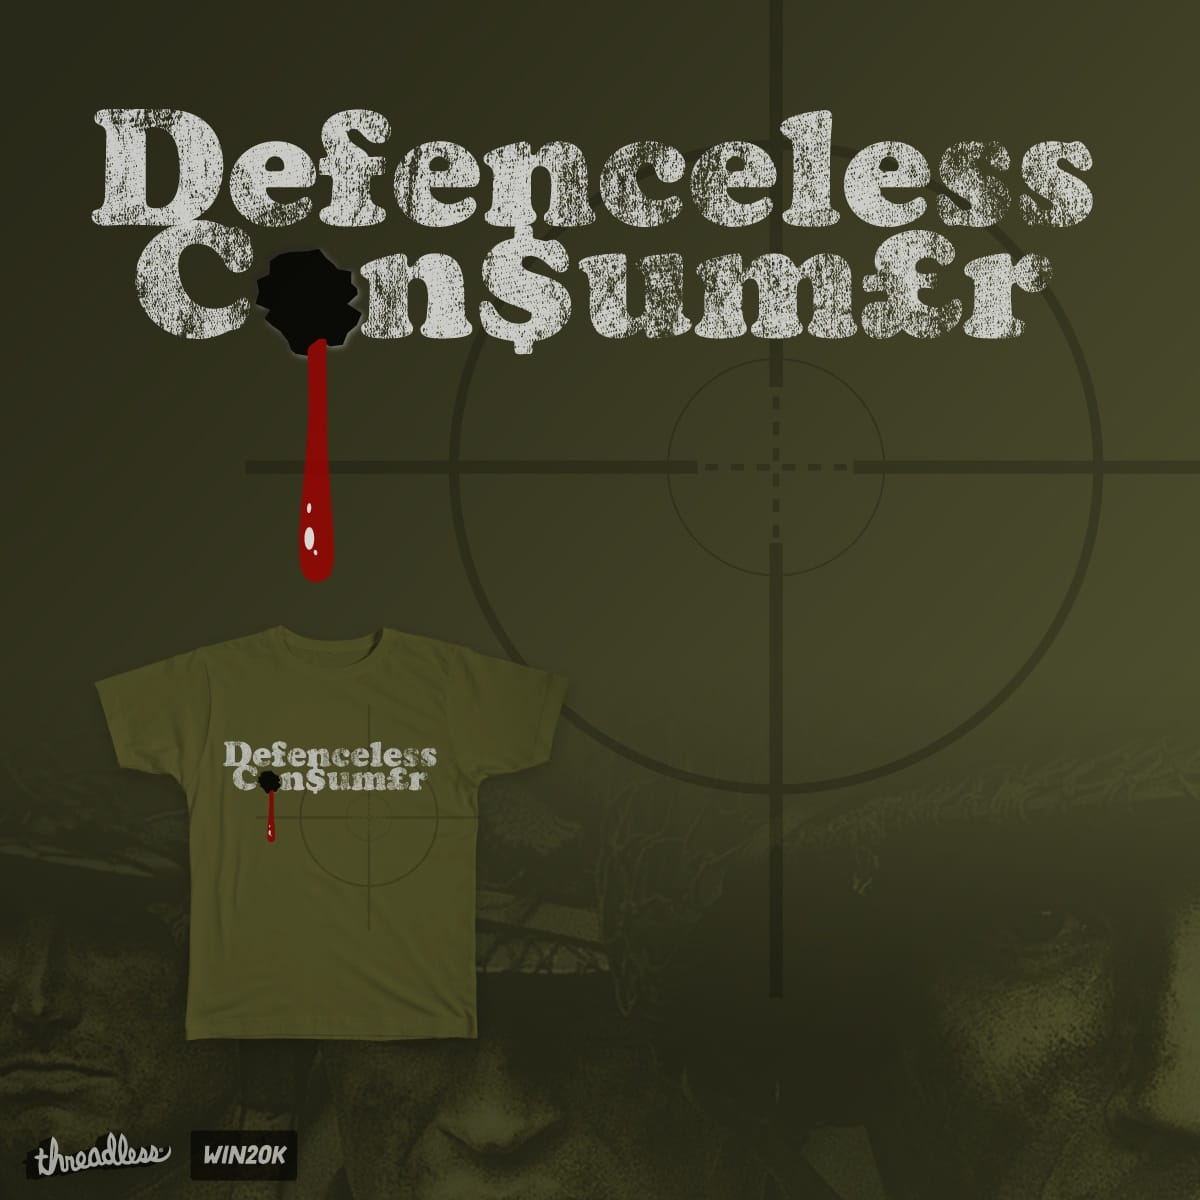 Defenceless Consumer by TMwG on Threadless